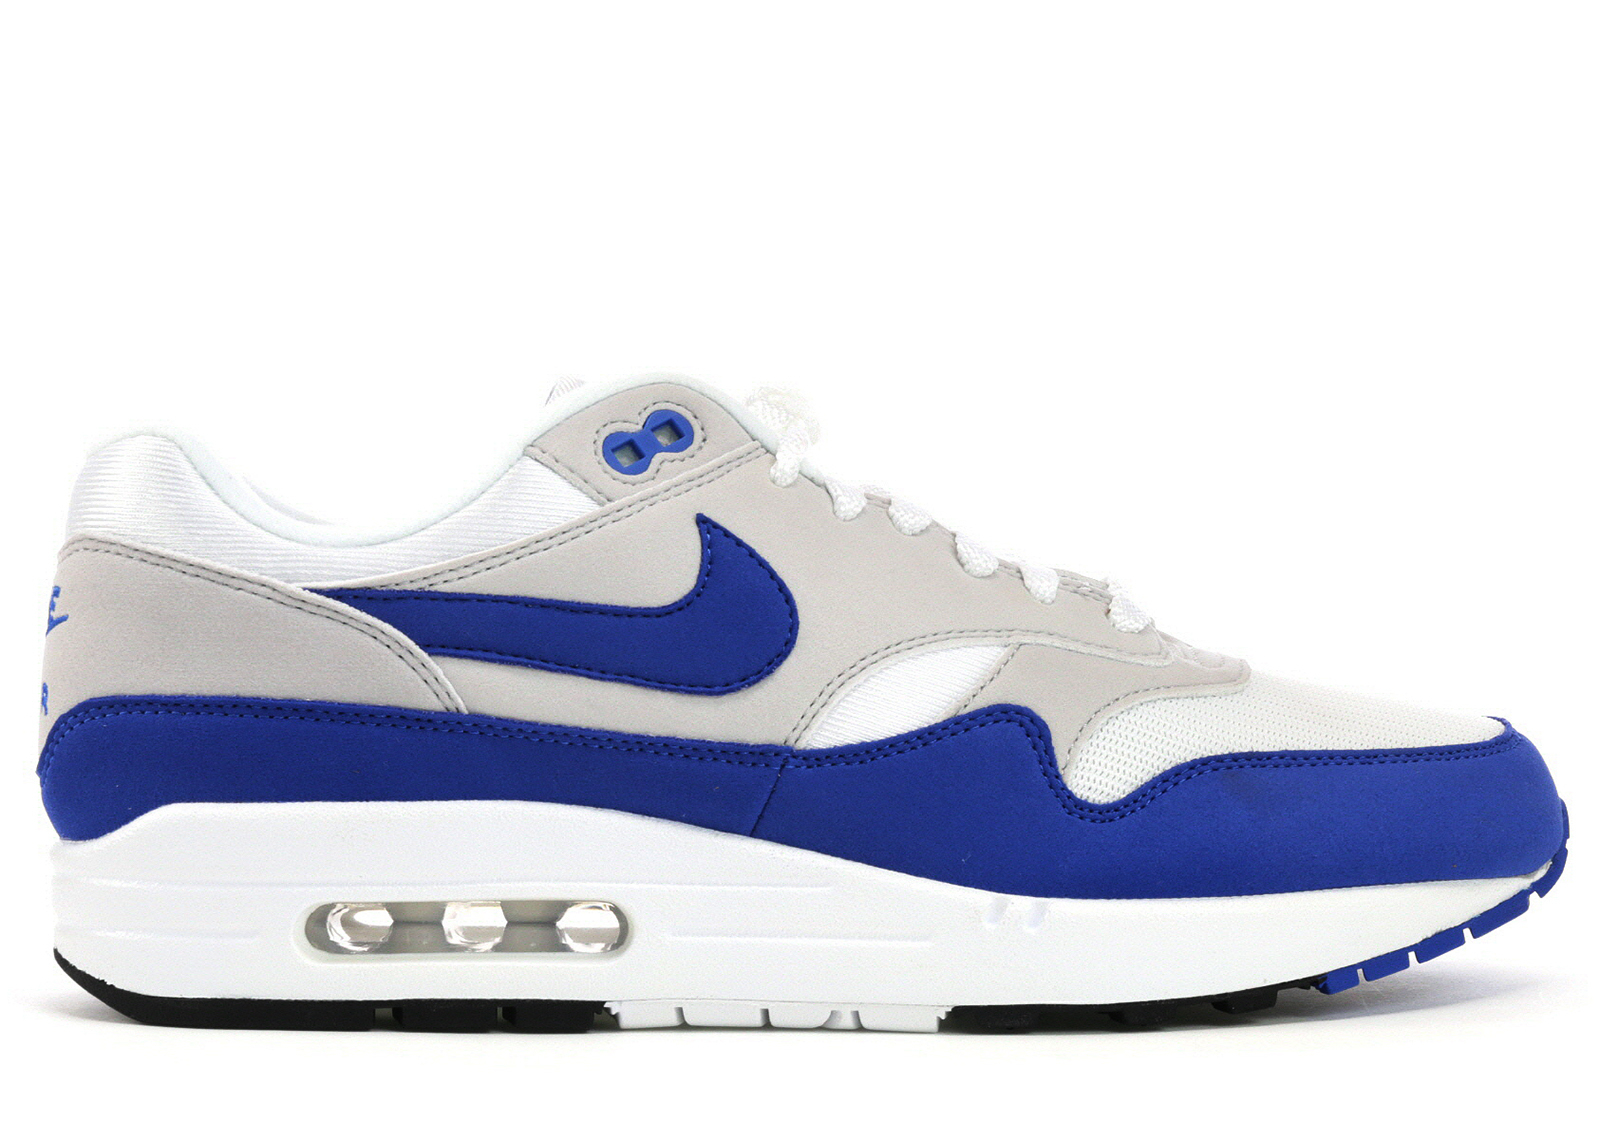 nike air max 1 royal